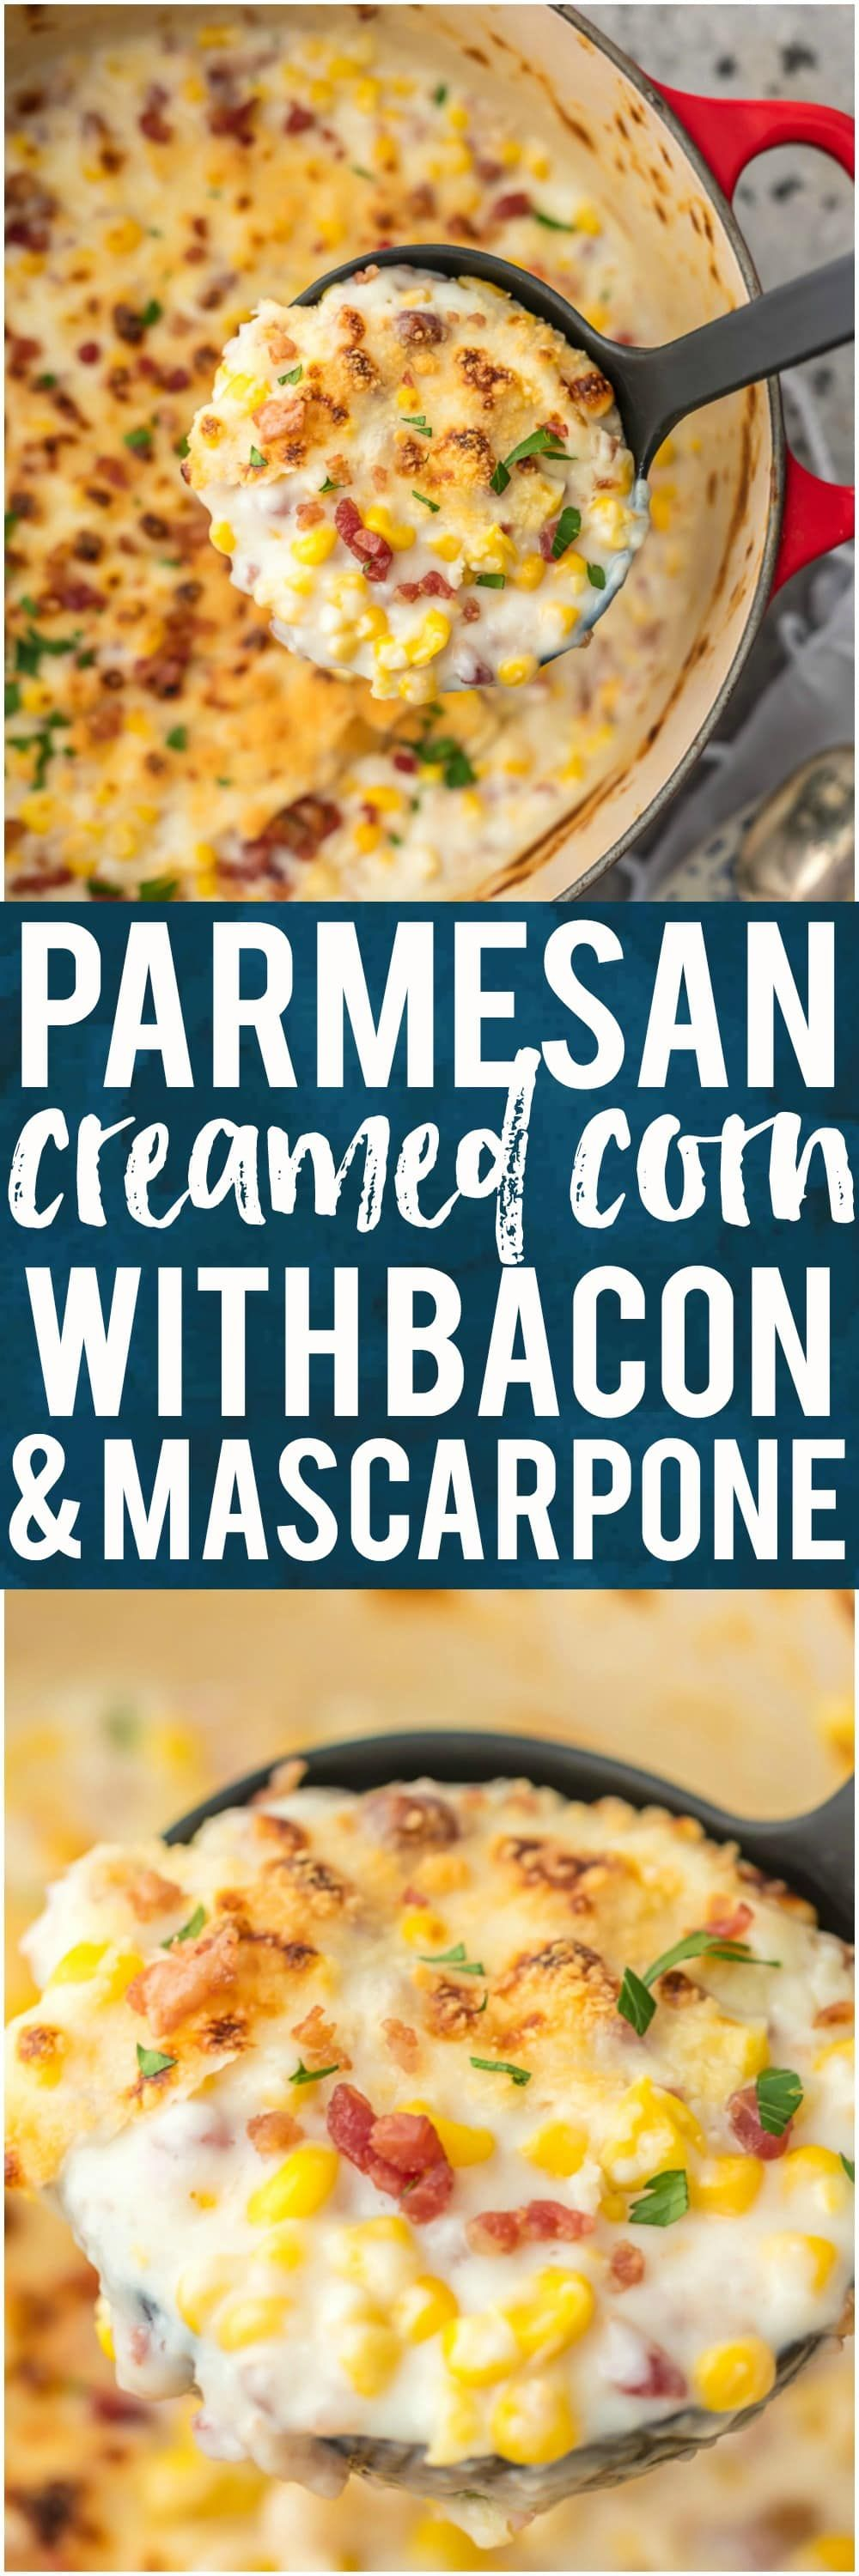 This PARMESAN CREAMED CORN WITH BACON AND MASCARPONE is one of our favorite holiday side dish recipes. If you're looking for a